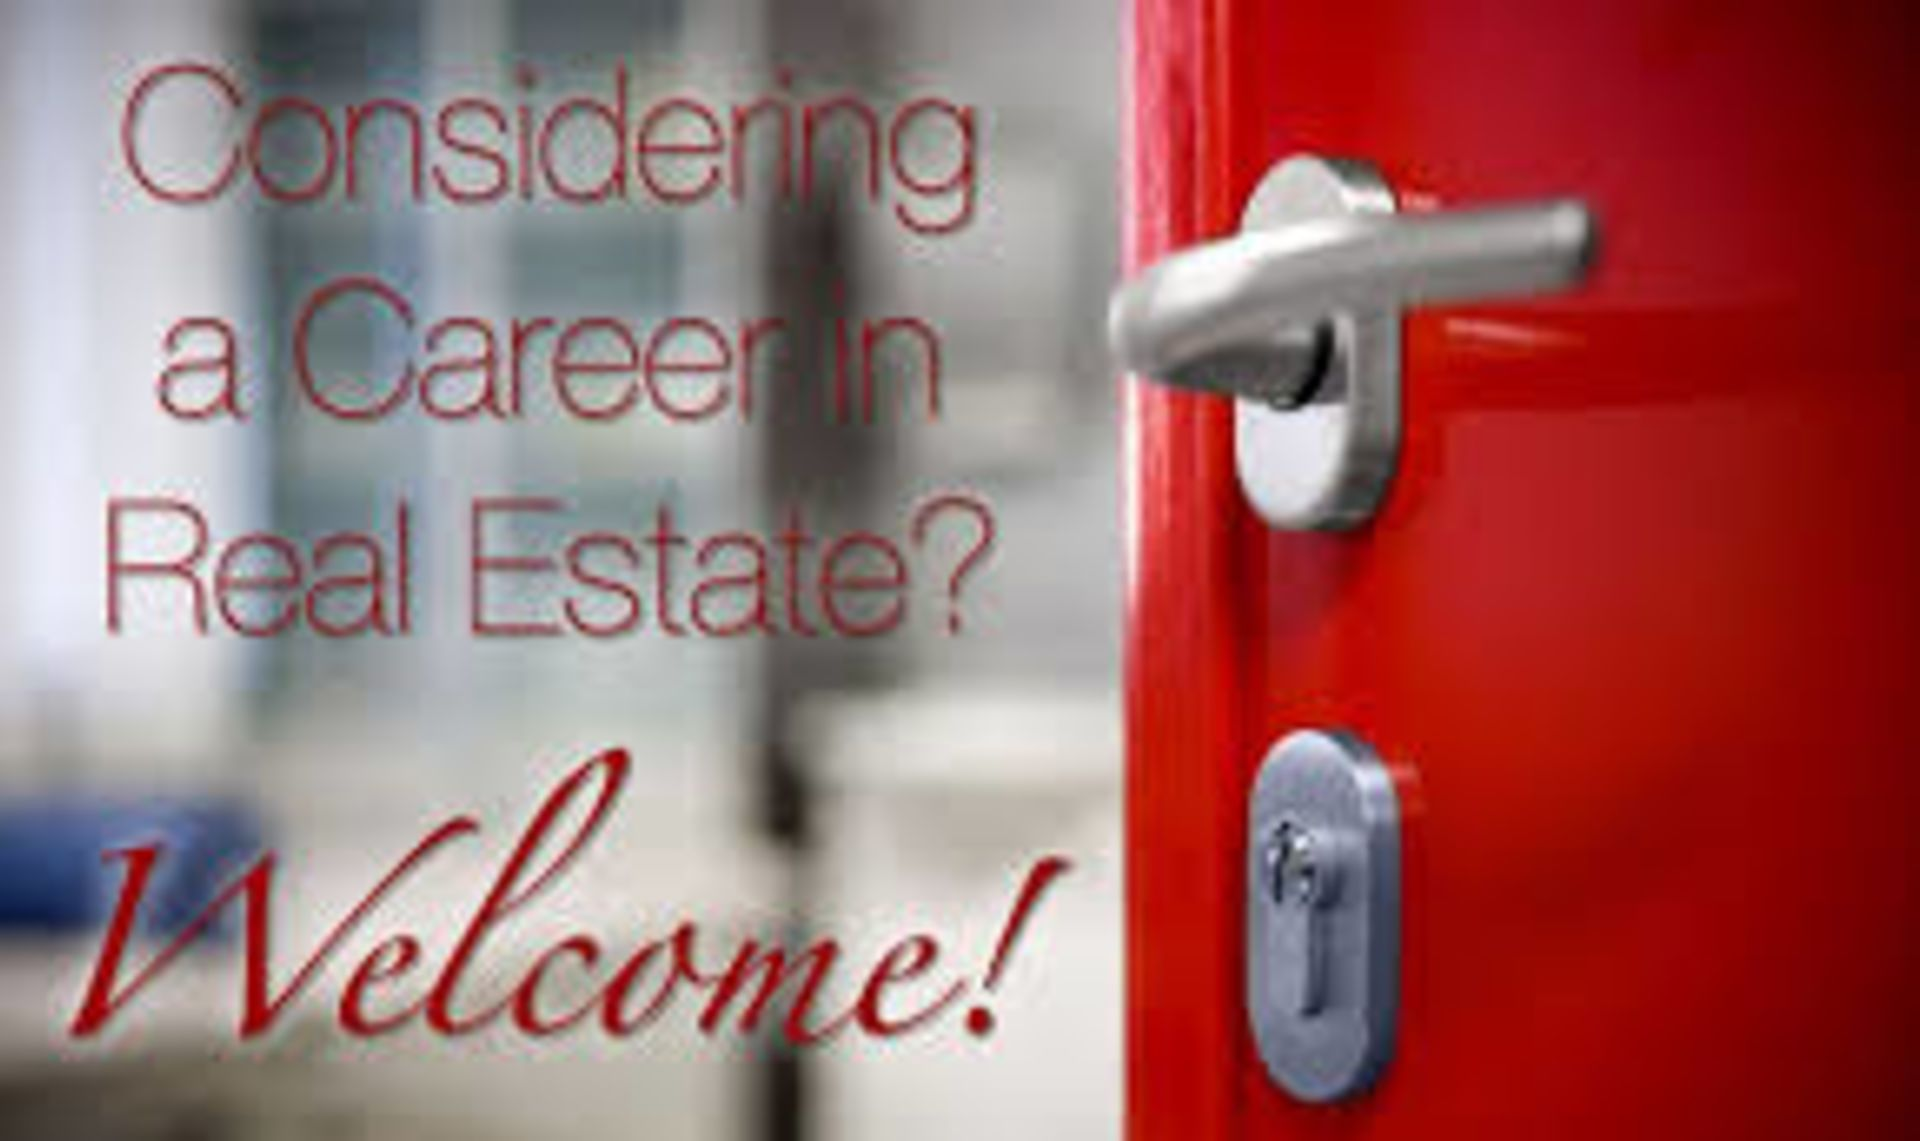 What About a Real Estate Career?